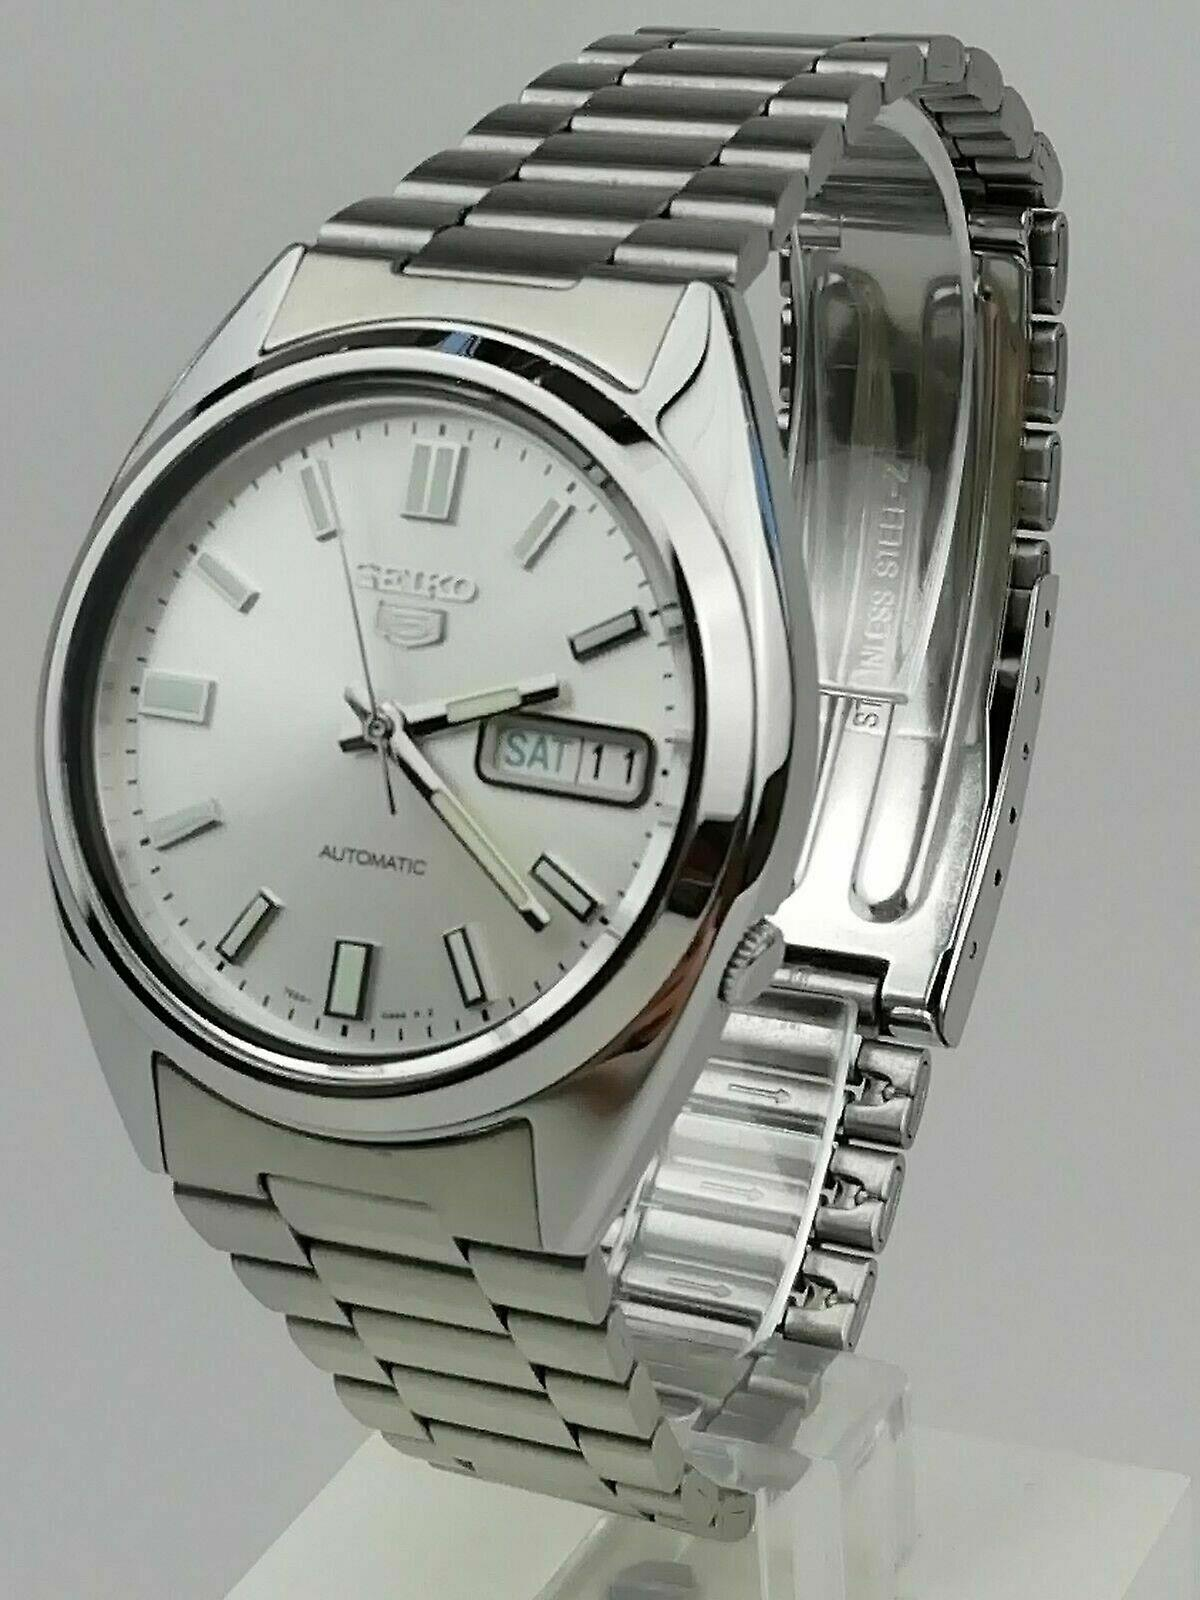 Seiko 5 Automatic Silver Dial Silver Stainless Steel Men's Watch SNXS73K1 RRP £169